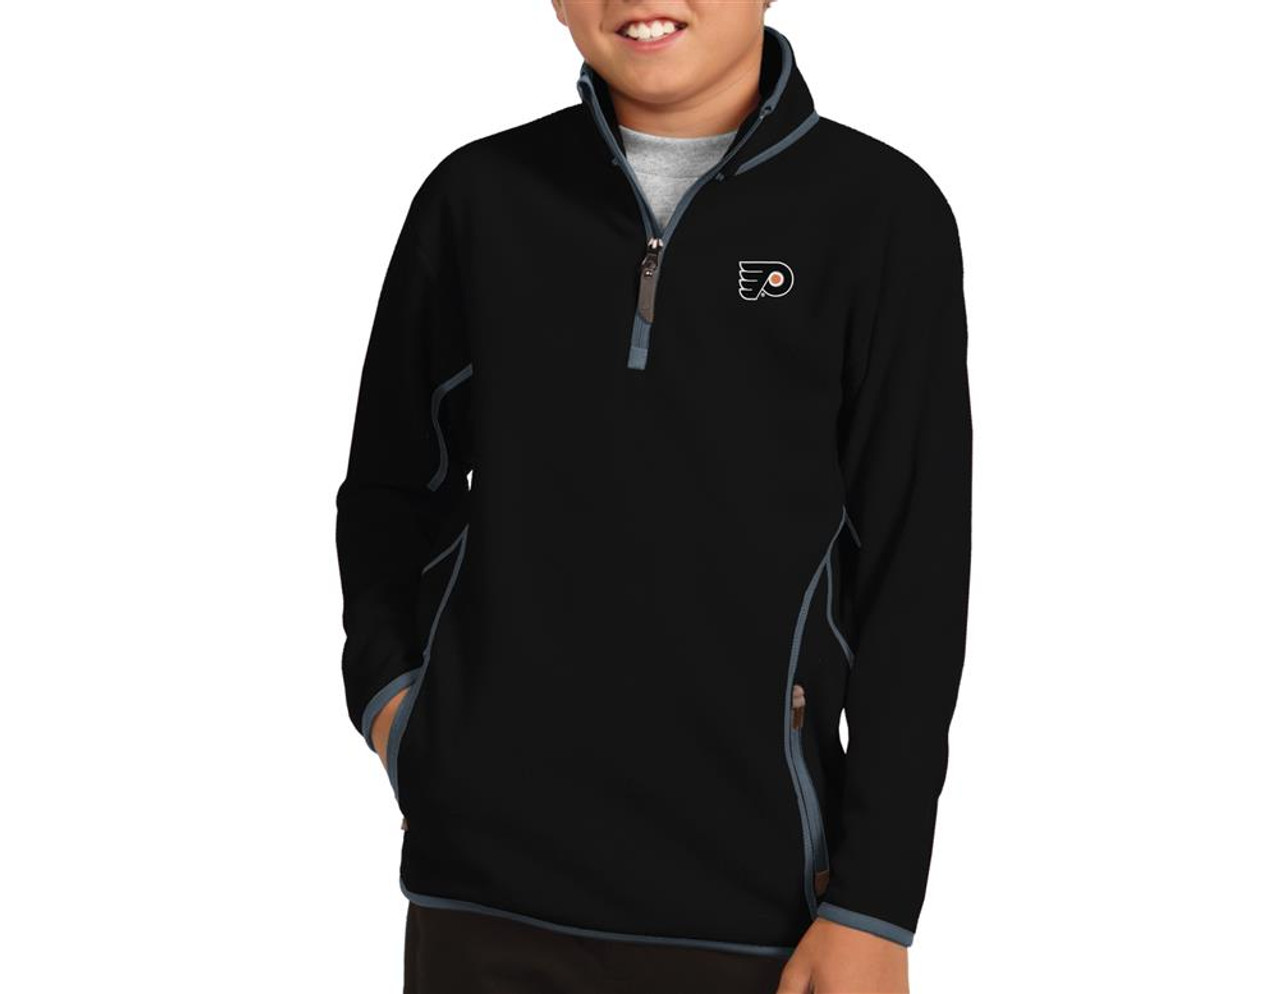 Pittsburgh Penguins Youth Pullover Jacket